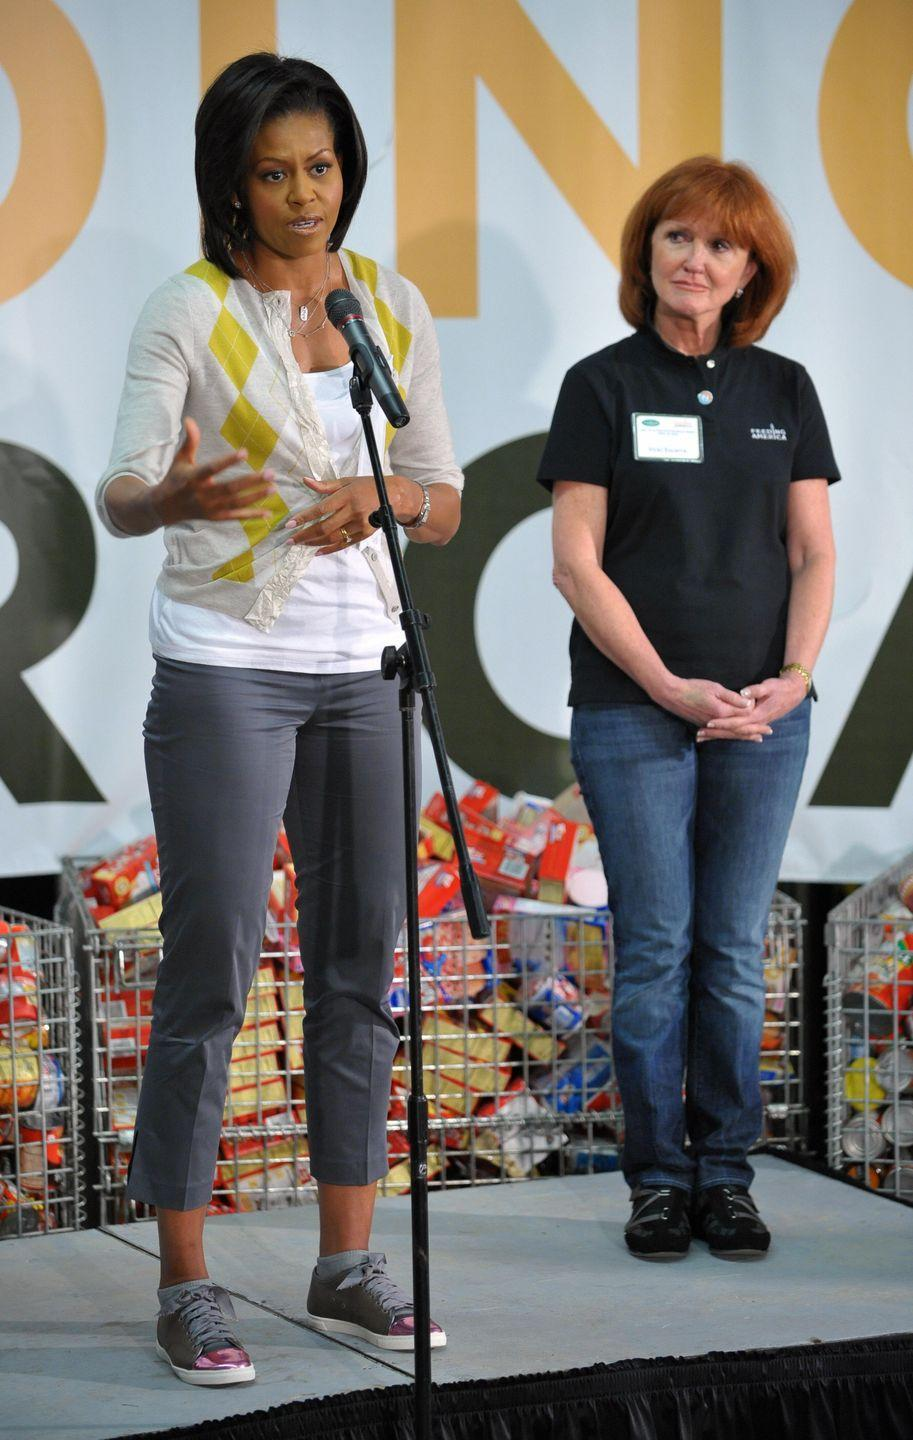 "<p>While at a 2009 food bank event in Washington D.C., former first lady Michelle Obama wore a pair of $540 Lanvin sneakers that caused her to appear in a couple of headlines. When <a href=""http://www.nydailynews.com/life-style/fashion/lady-michelle-obama-steps-lanvin-sneakers-540-article-1.376580"" rel=""nofollow noopener"" target=""_blank"" data-ylk=""slk:asked about the shoes"" class=""link rapid-noclick-resp"">asked about the shoes</a> later by reporters, Obama reportedly told them, ""They're shoes."" </p>"